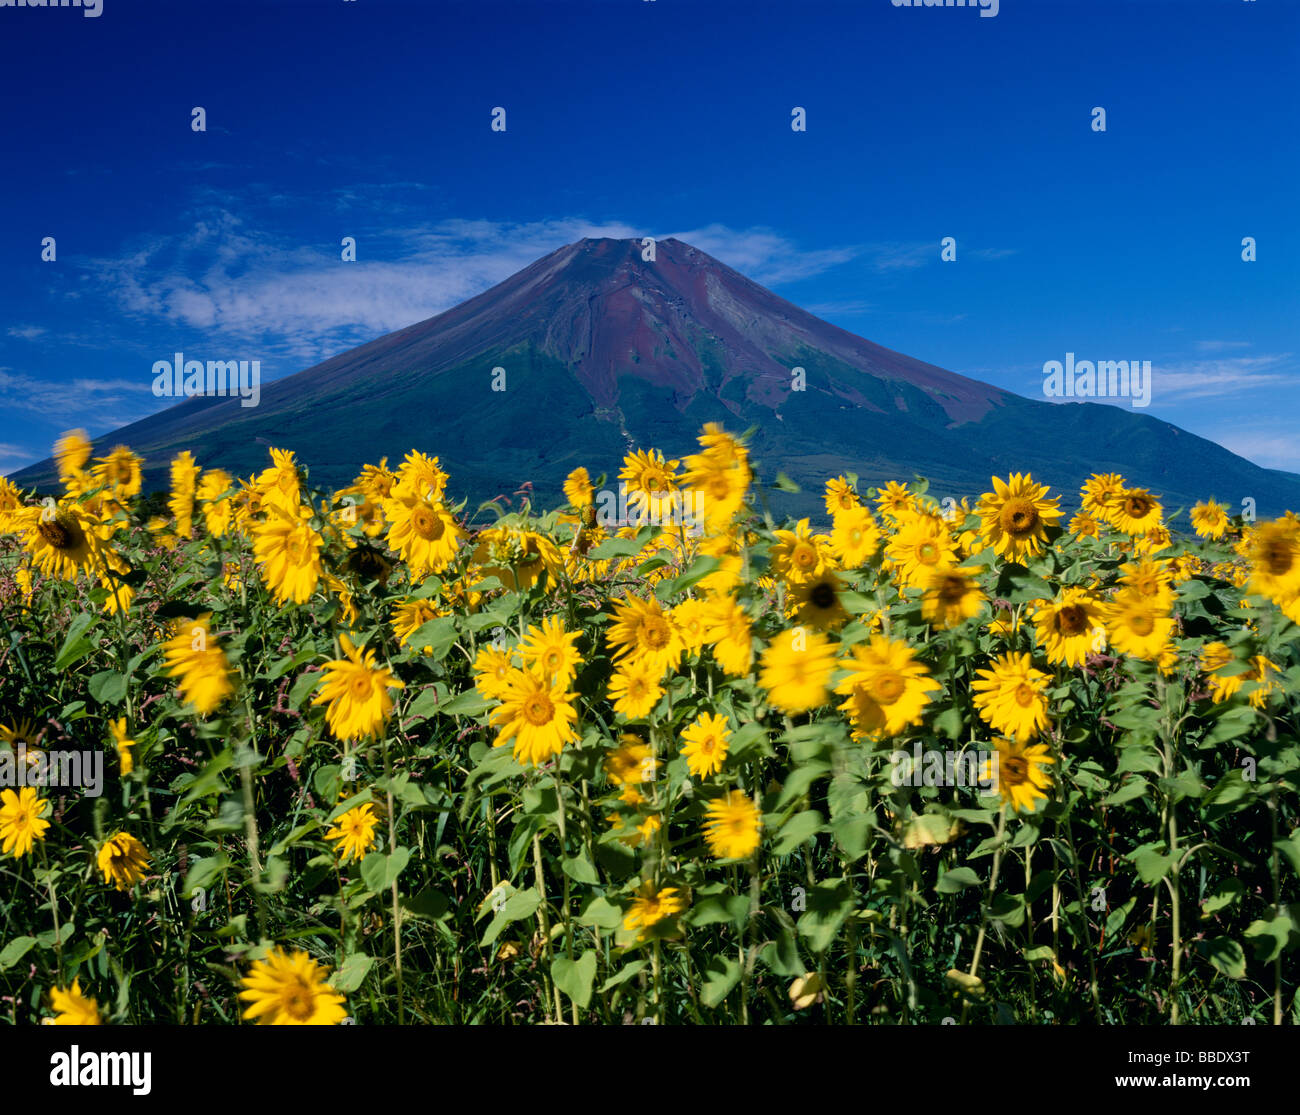 Mt.Fuji And Sunflower - Stock Image